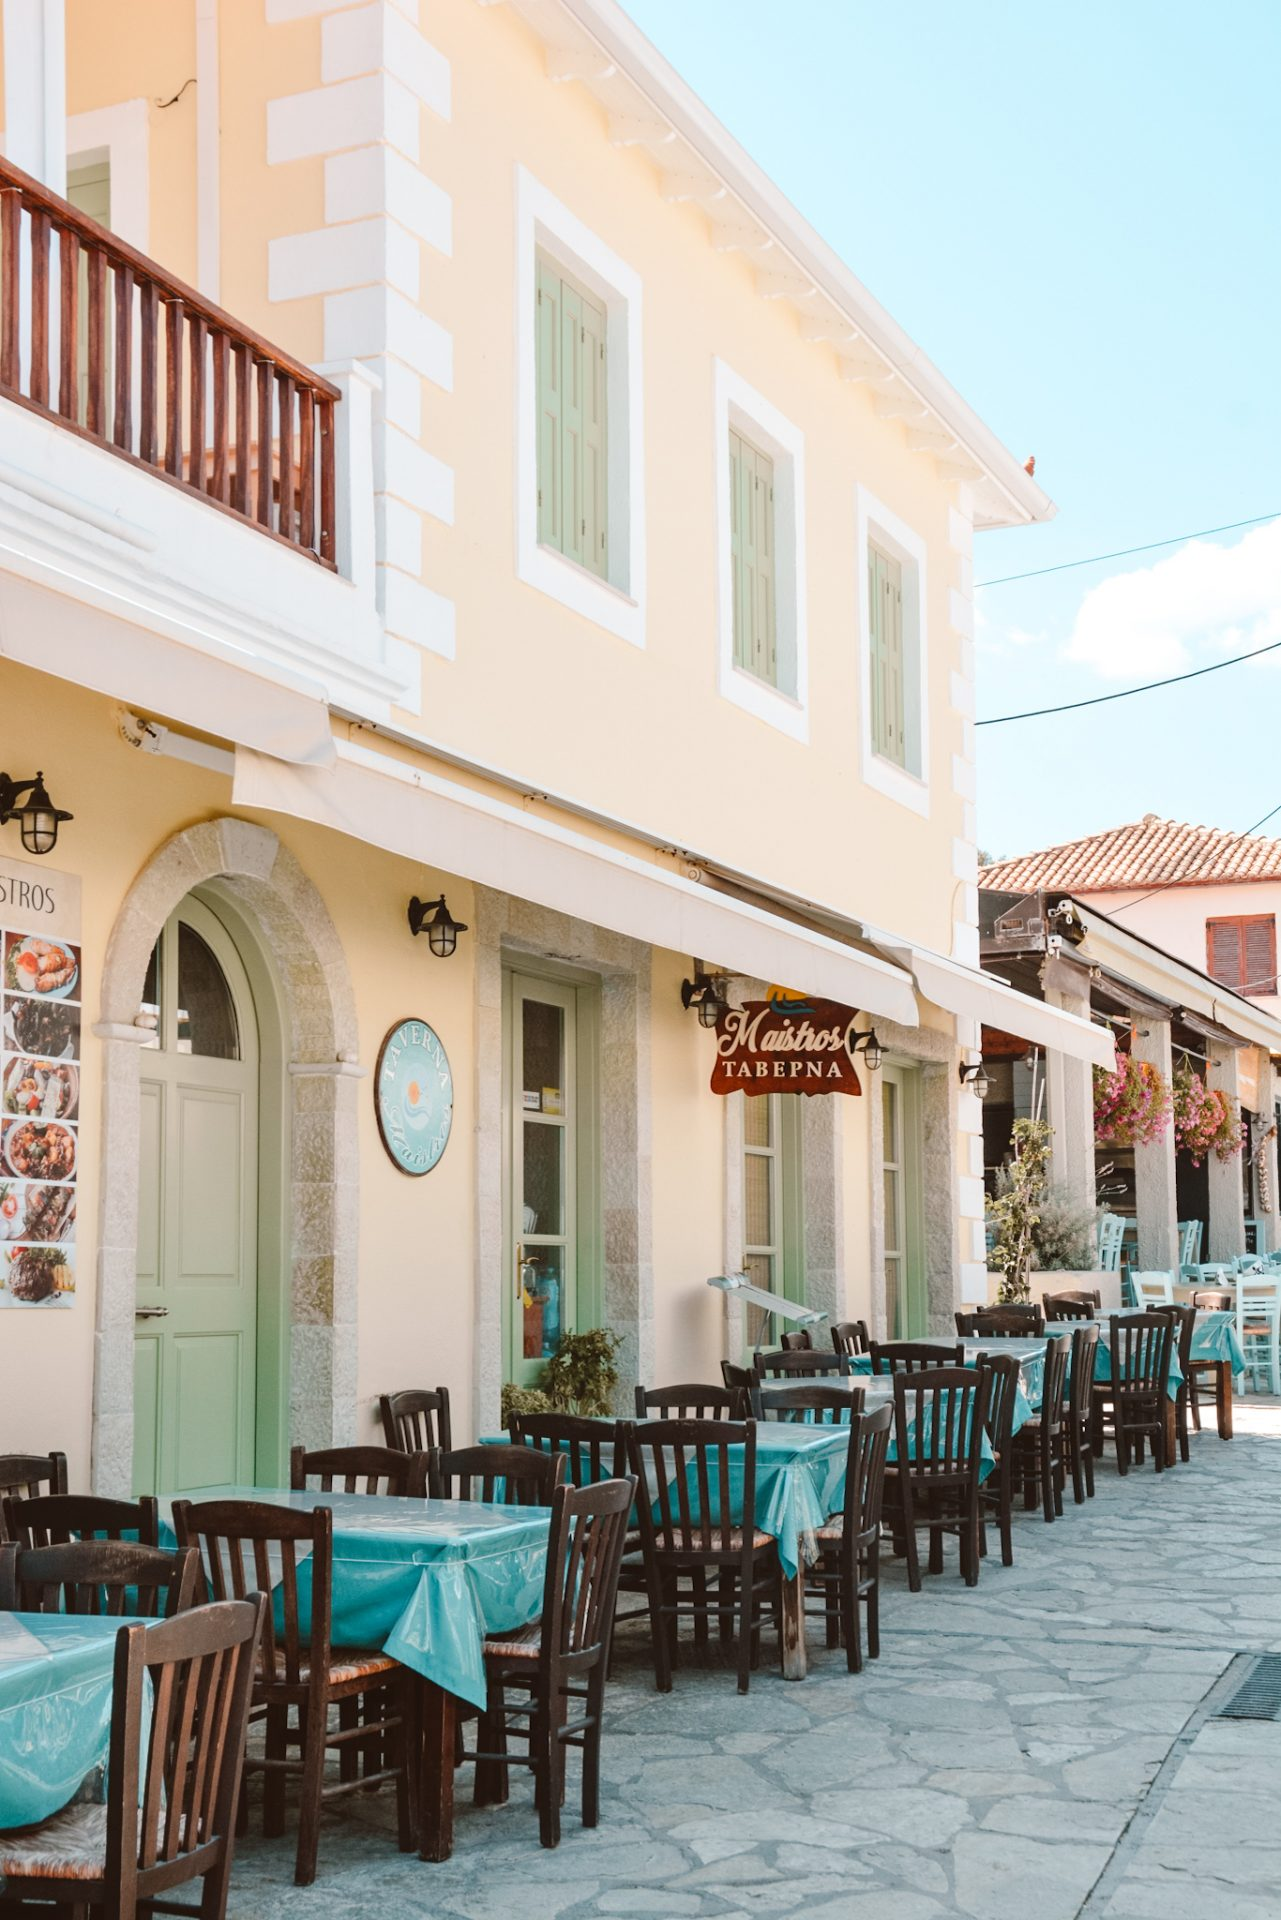 The village of Agios Nikitas is the best place to stay in Lefkada